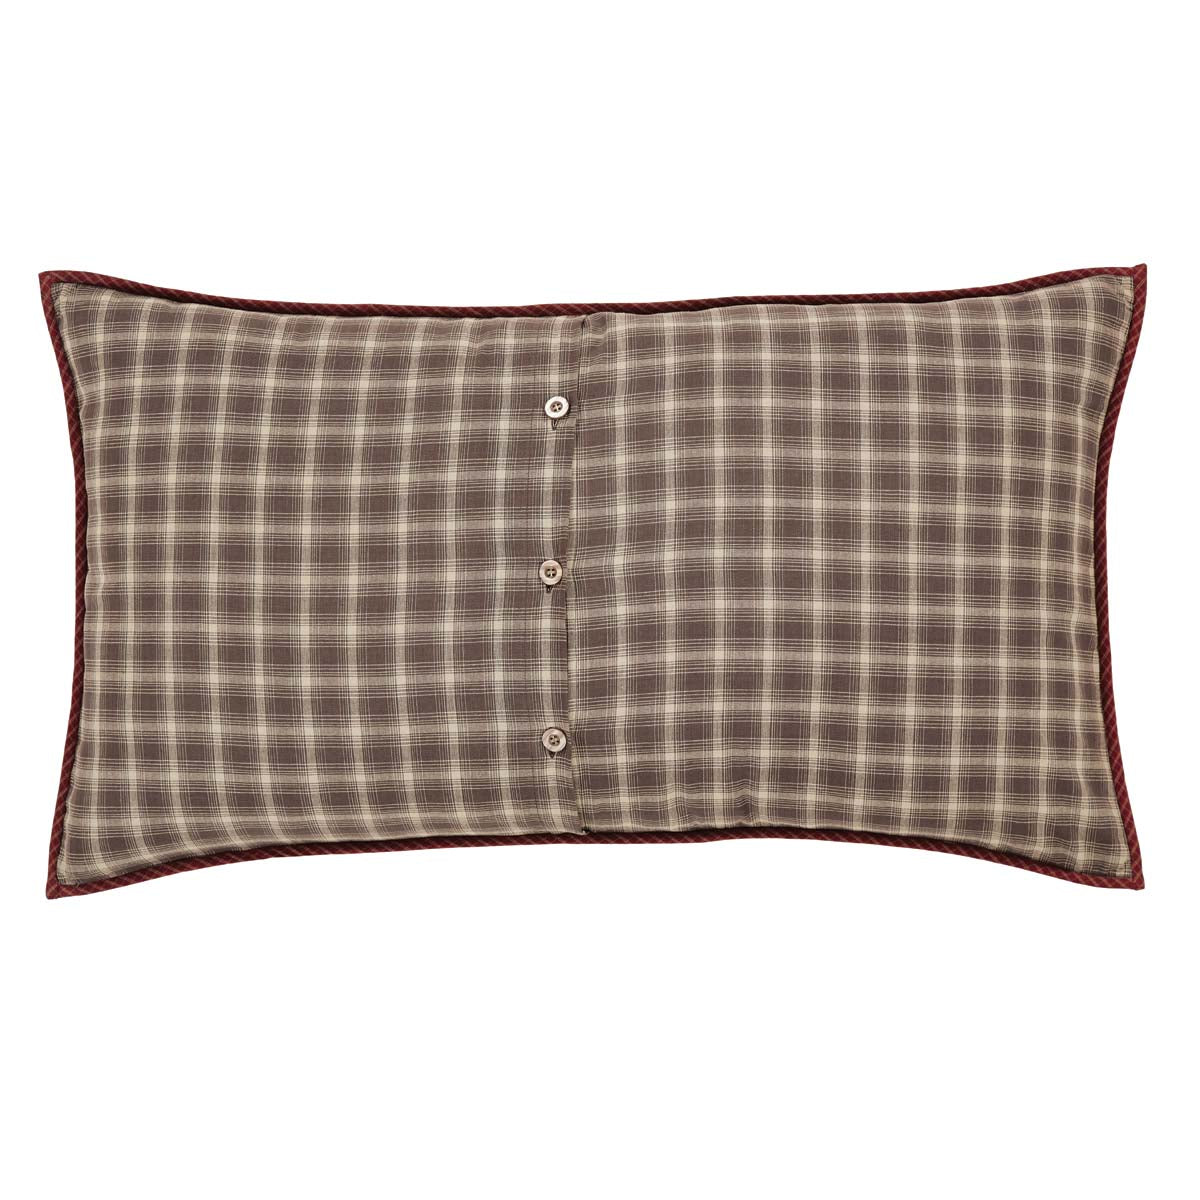 Dawson Star King Sham 21x37 - Woodrol